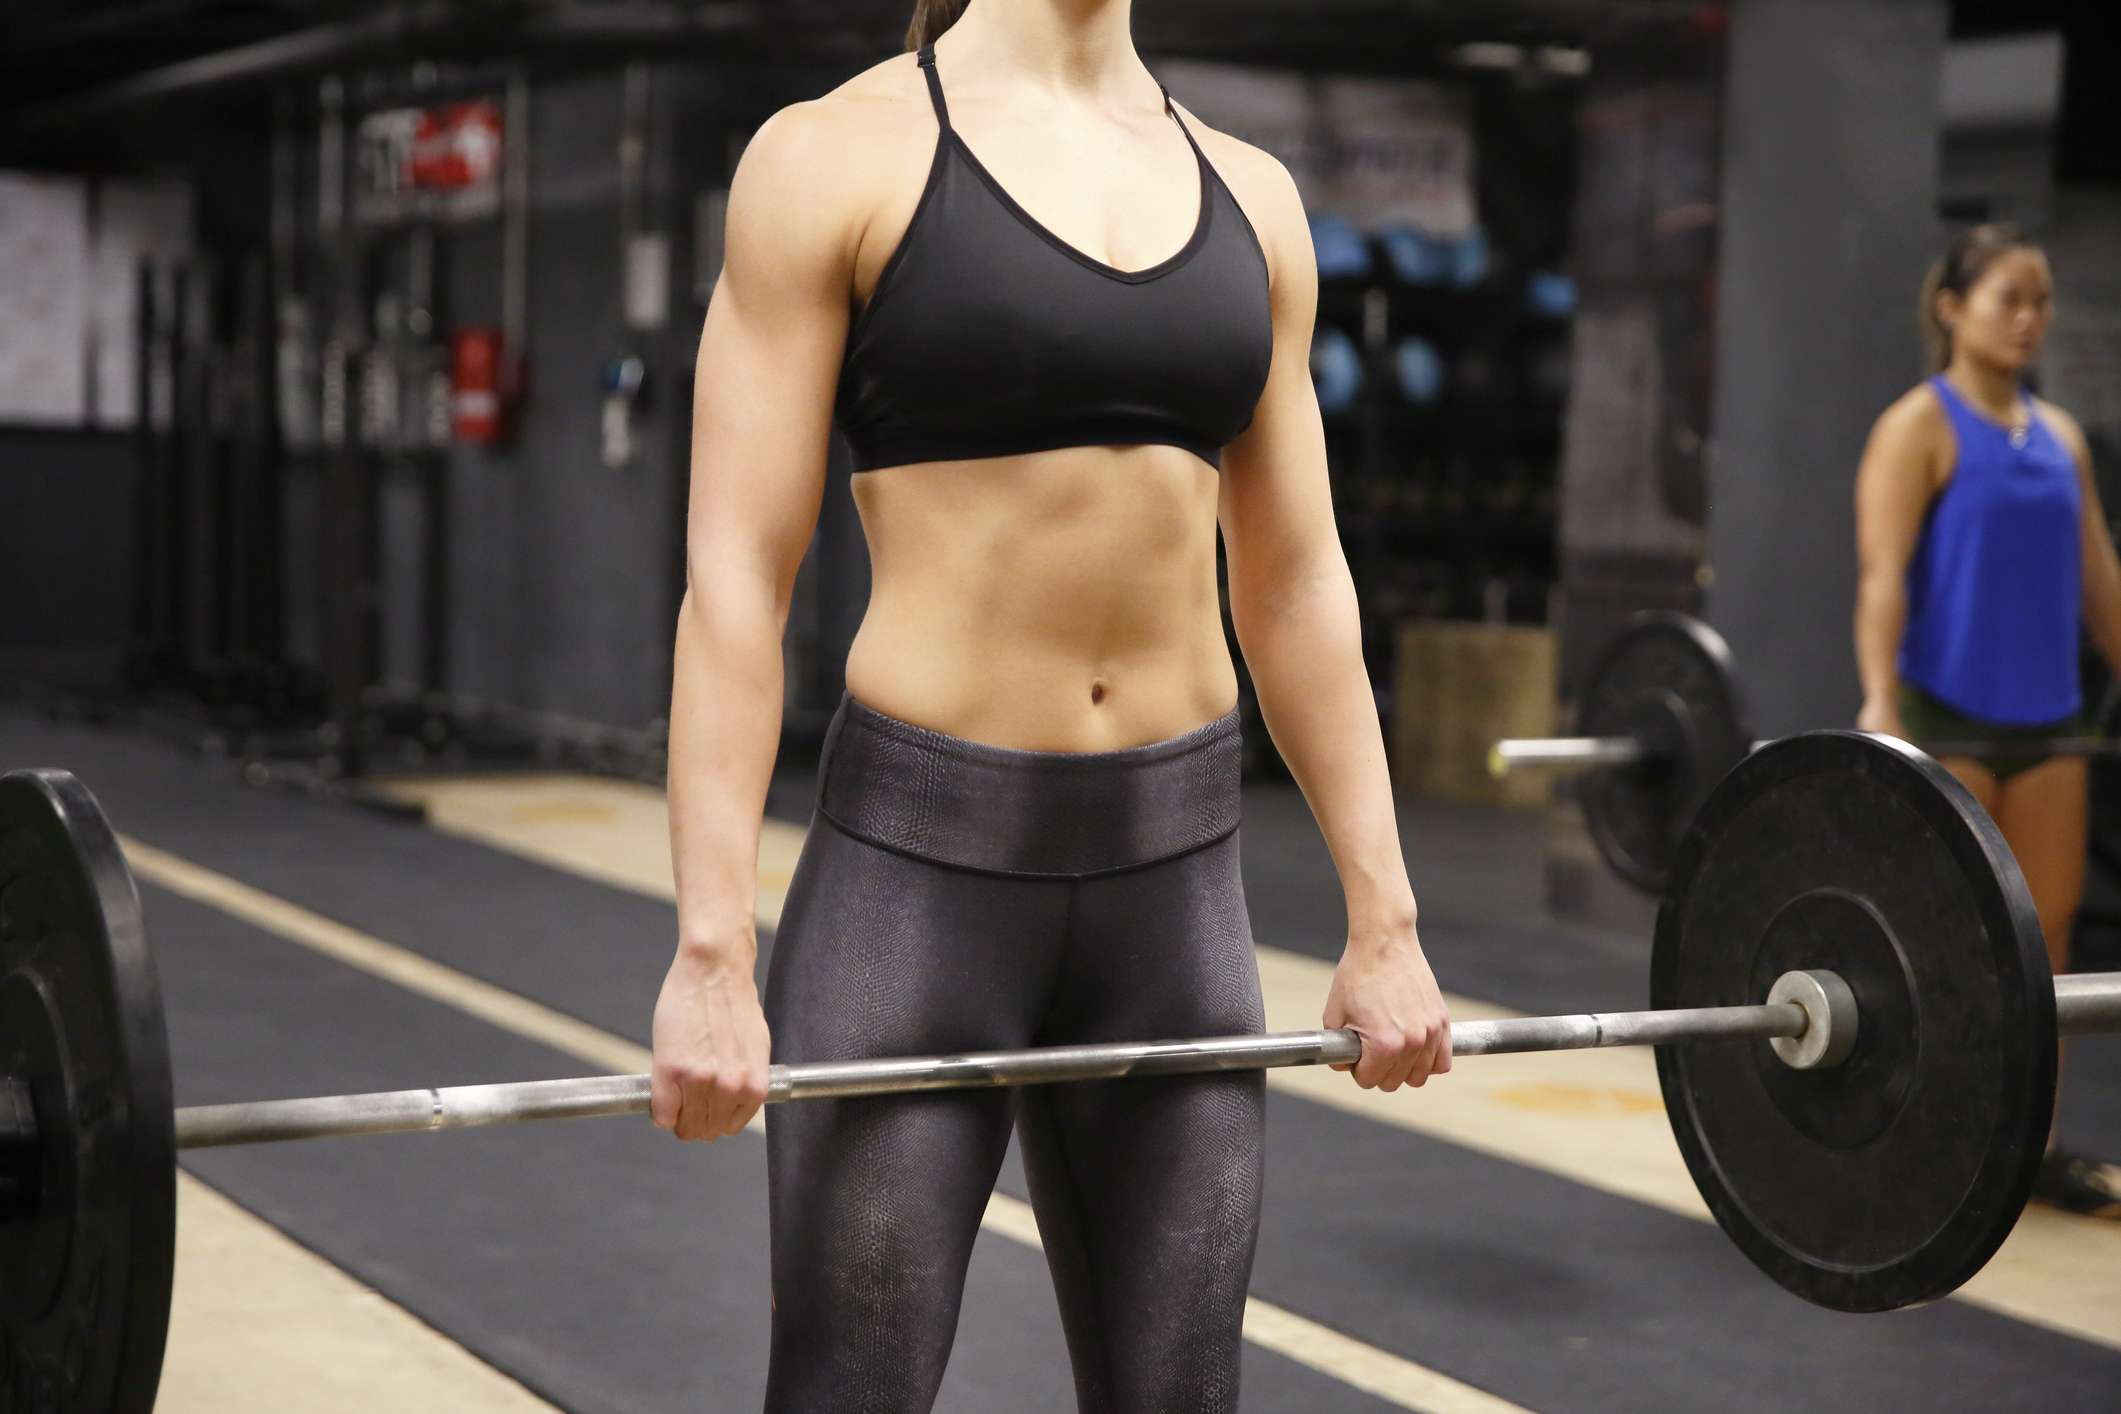 Woman holding barbell to do hang clean